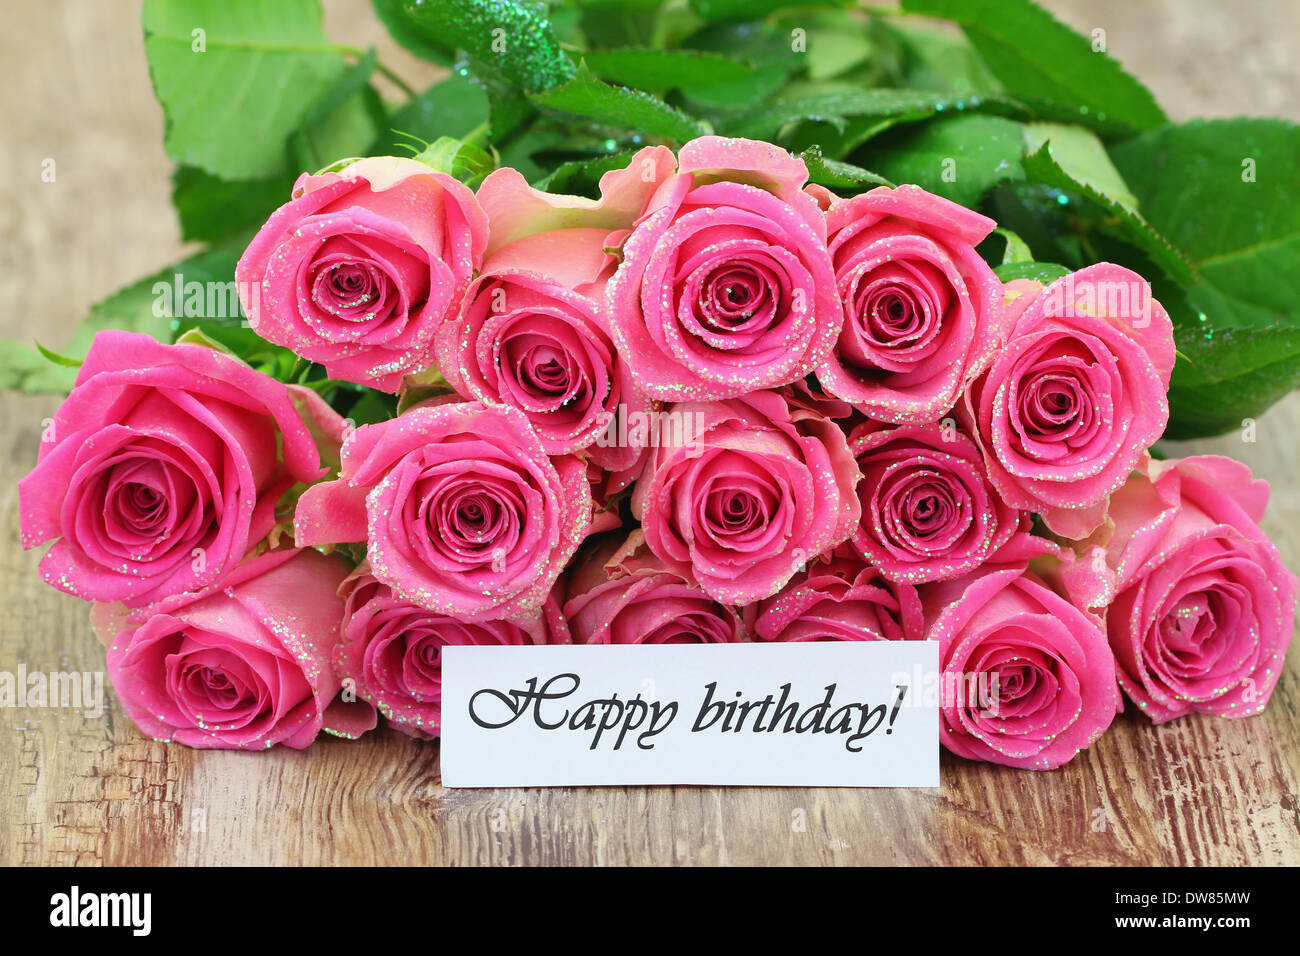 Happy birthday card with bouquet of pink roses stock photo 67177625 happy birthday card with bouquet of pink roses izmirmasajfo